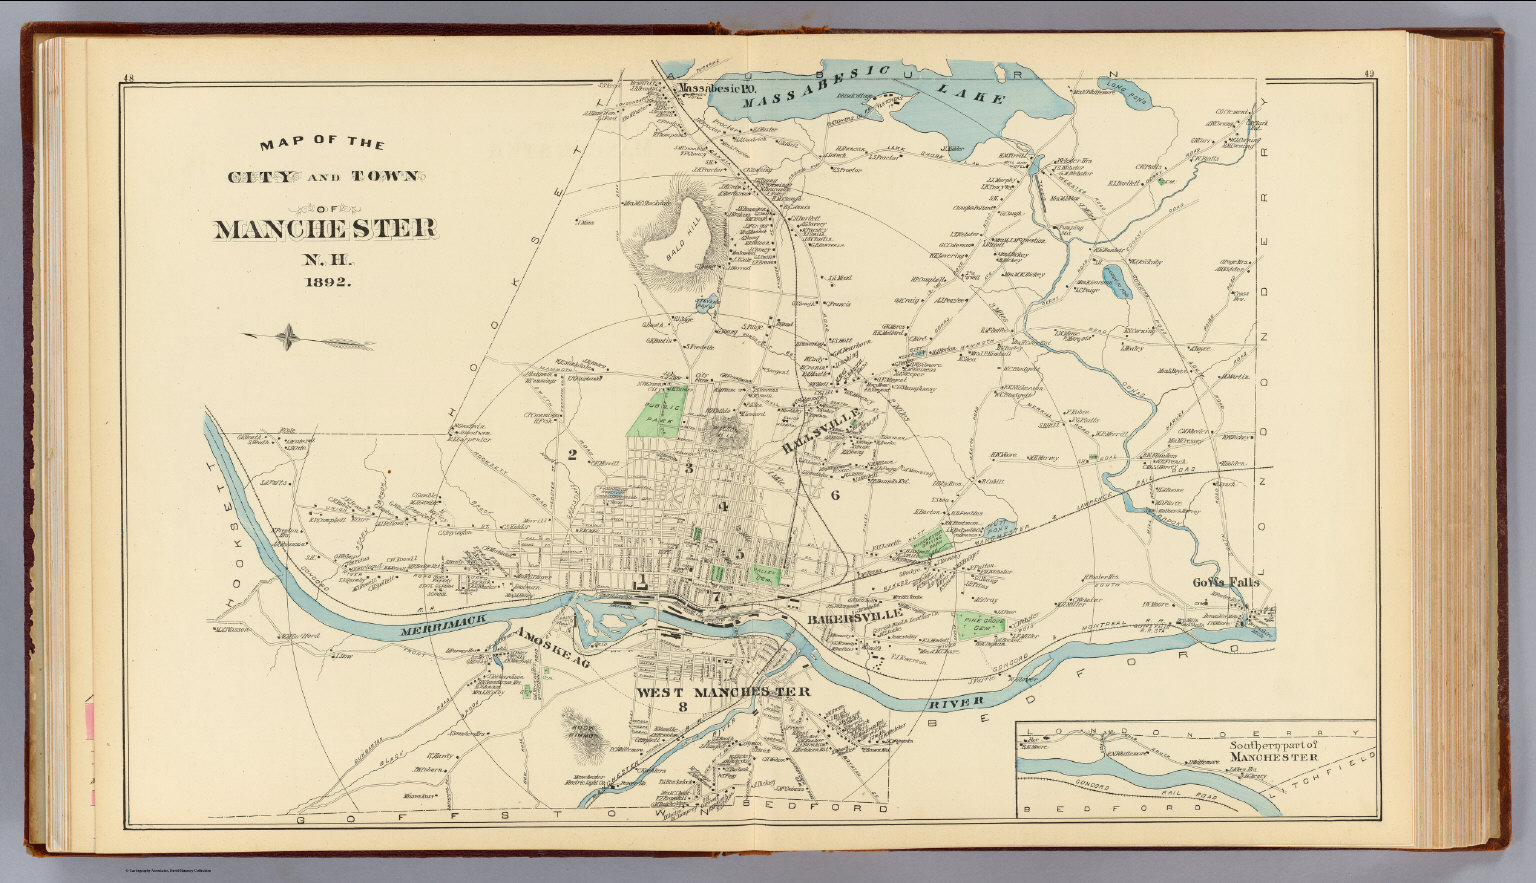 Manchester, N.H. city, town. - David Rumsey Historical Map ... on mall of la map, mall of ga map, mall of new hampshire map, newington mall map, mall of florida map, mall of manhattan map, fox run mall map, mall of millenia store map,